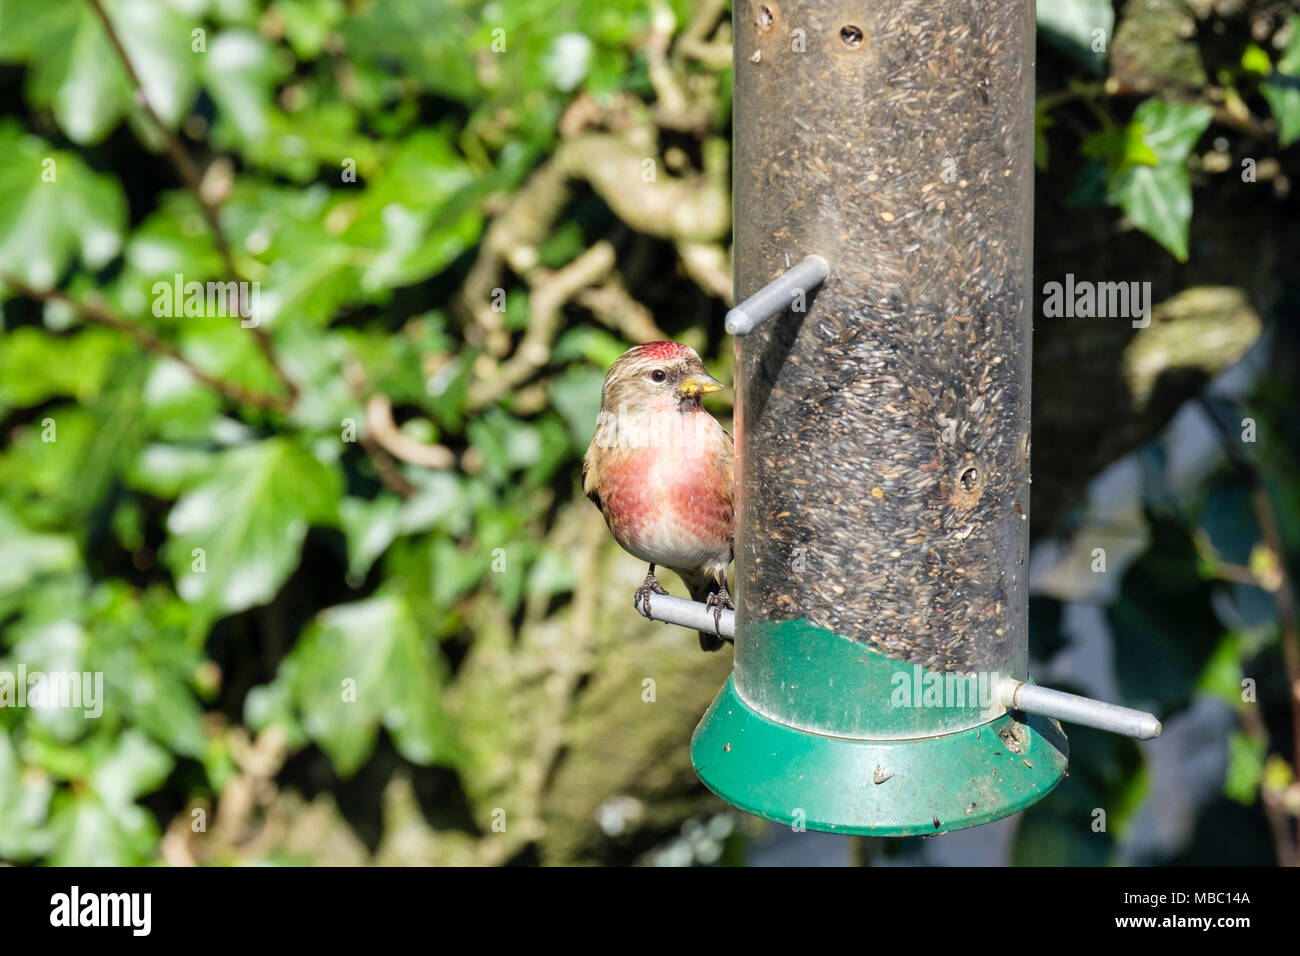 Colourful male Common Linnet (Carduelis cannabina) finch in spring plumage on a garden bird feeder in a hedgerow. North Wales, UK, Britain - Stock Image